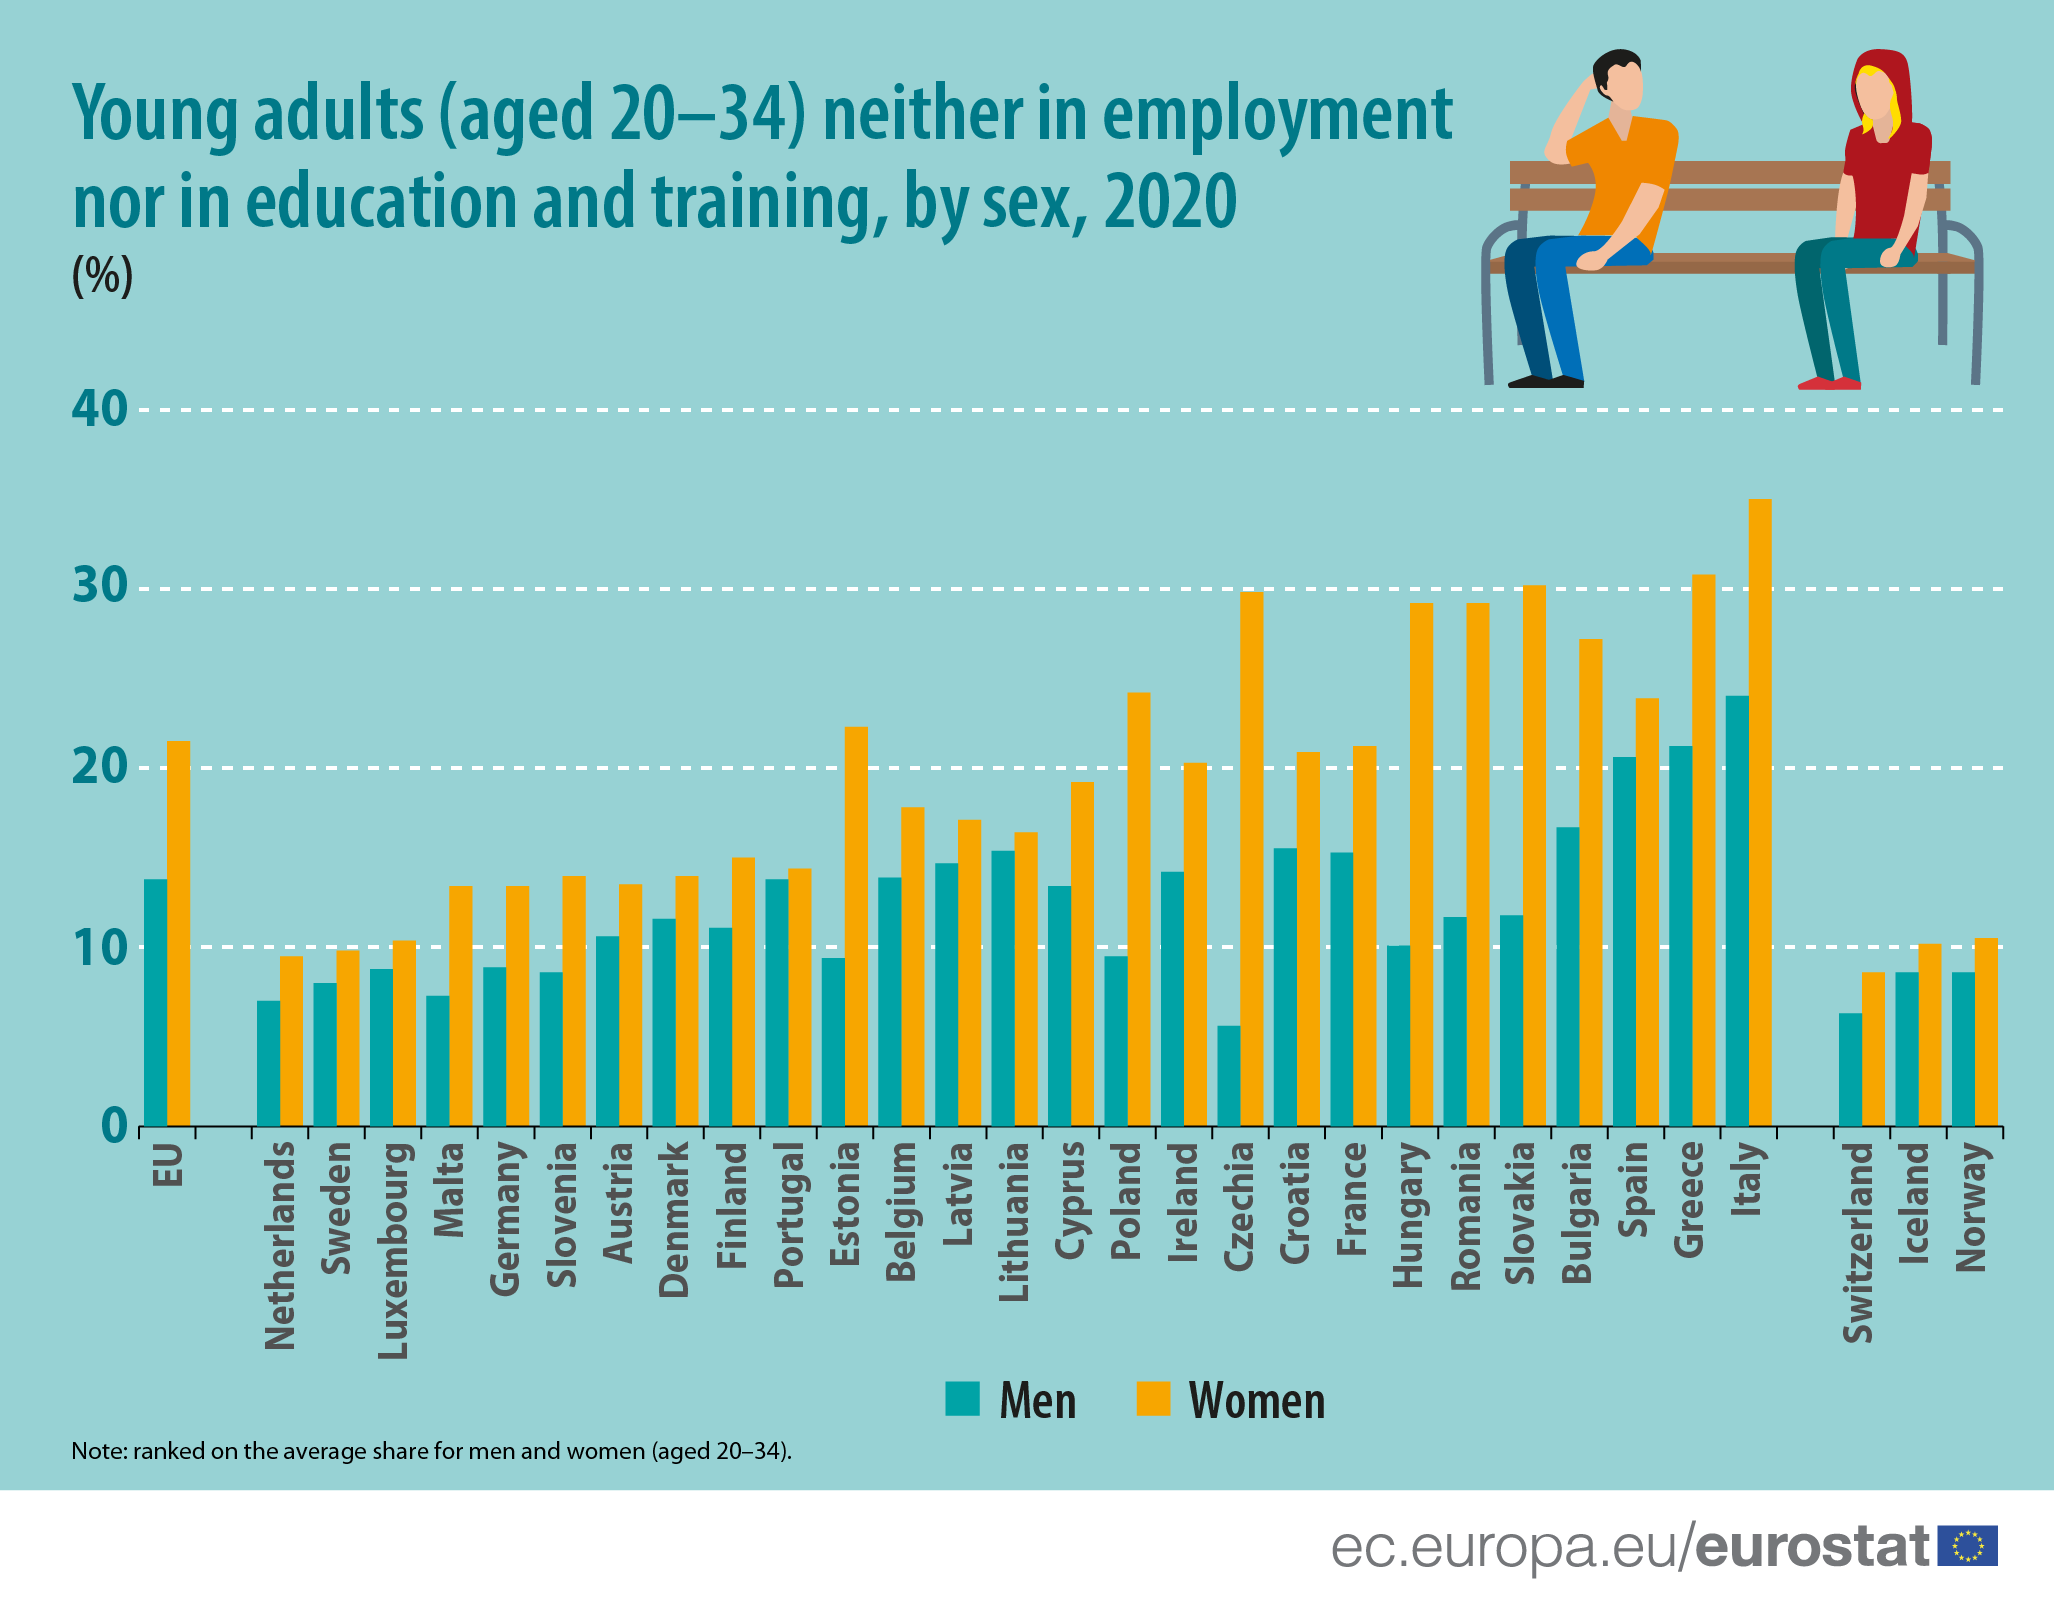 a chart showing employment and training levels amoung young women and men in europe